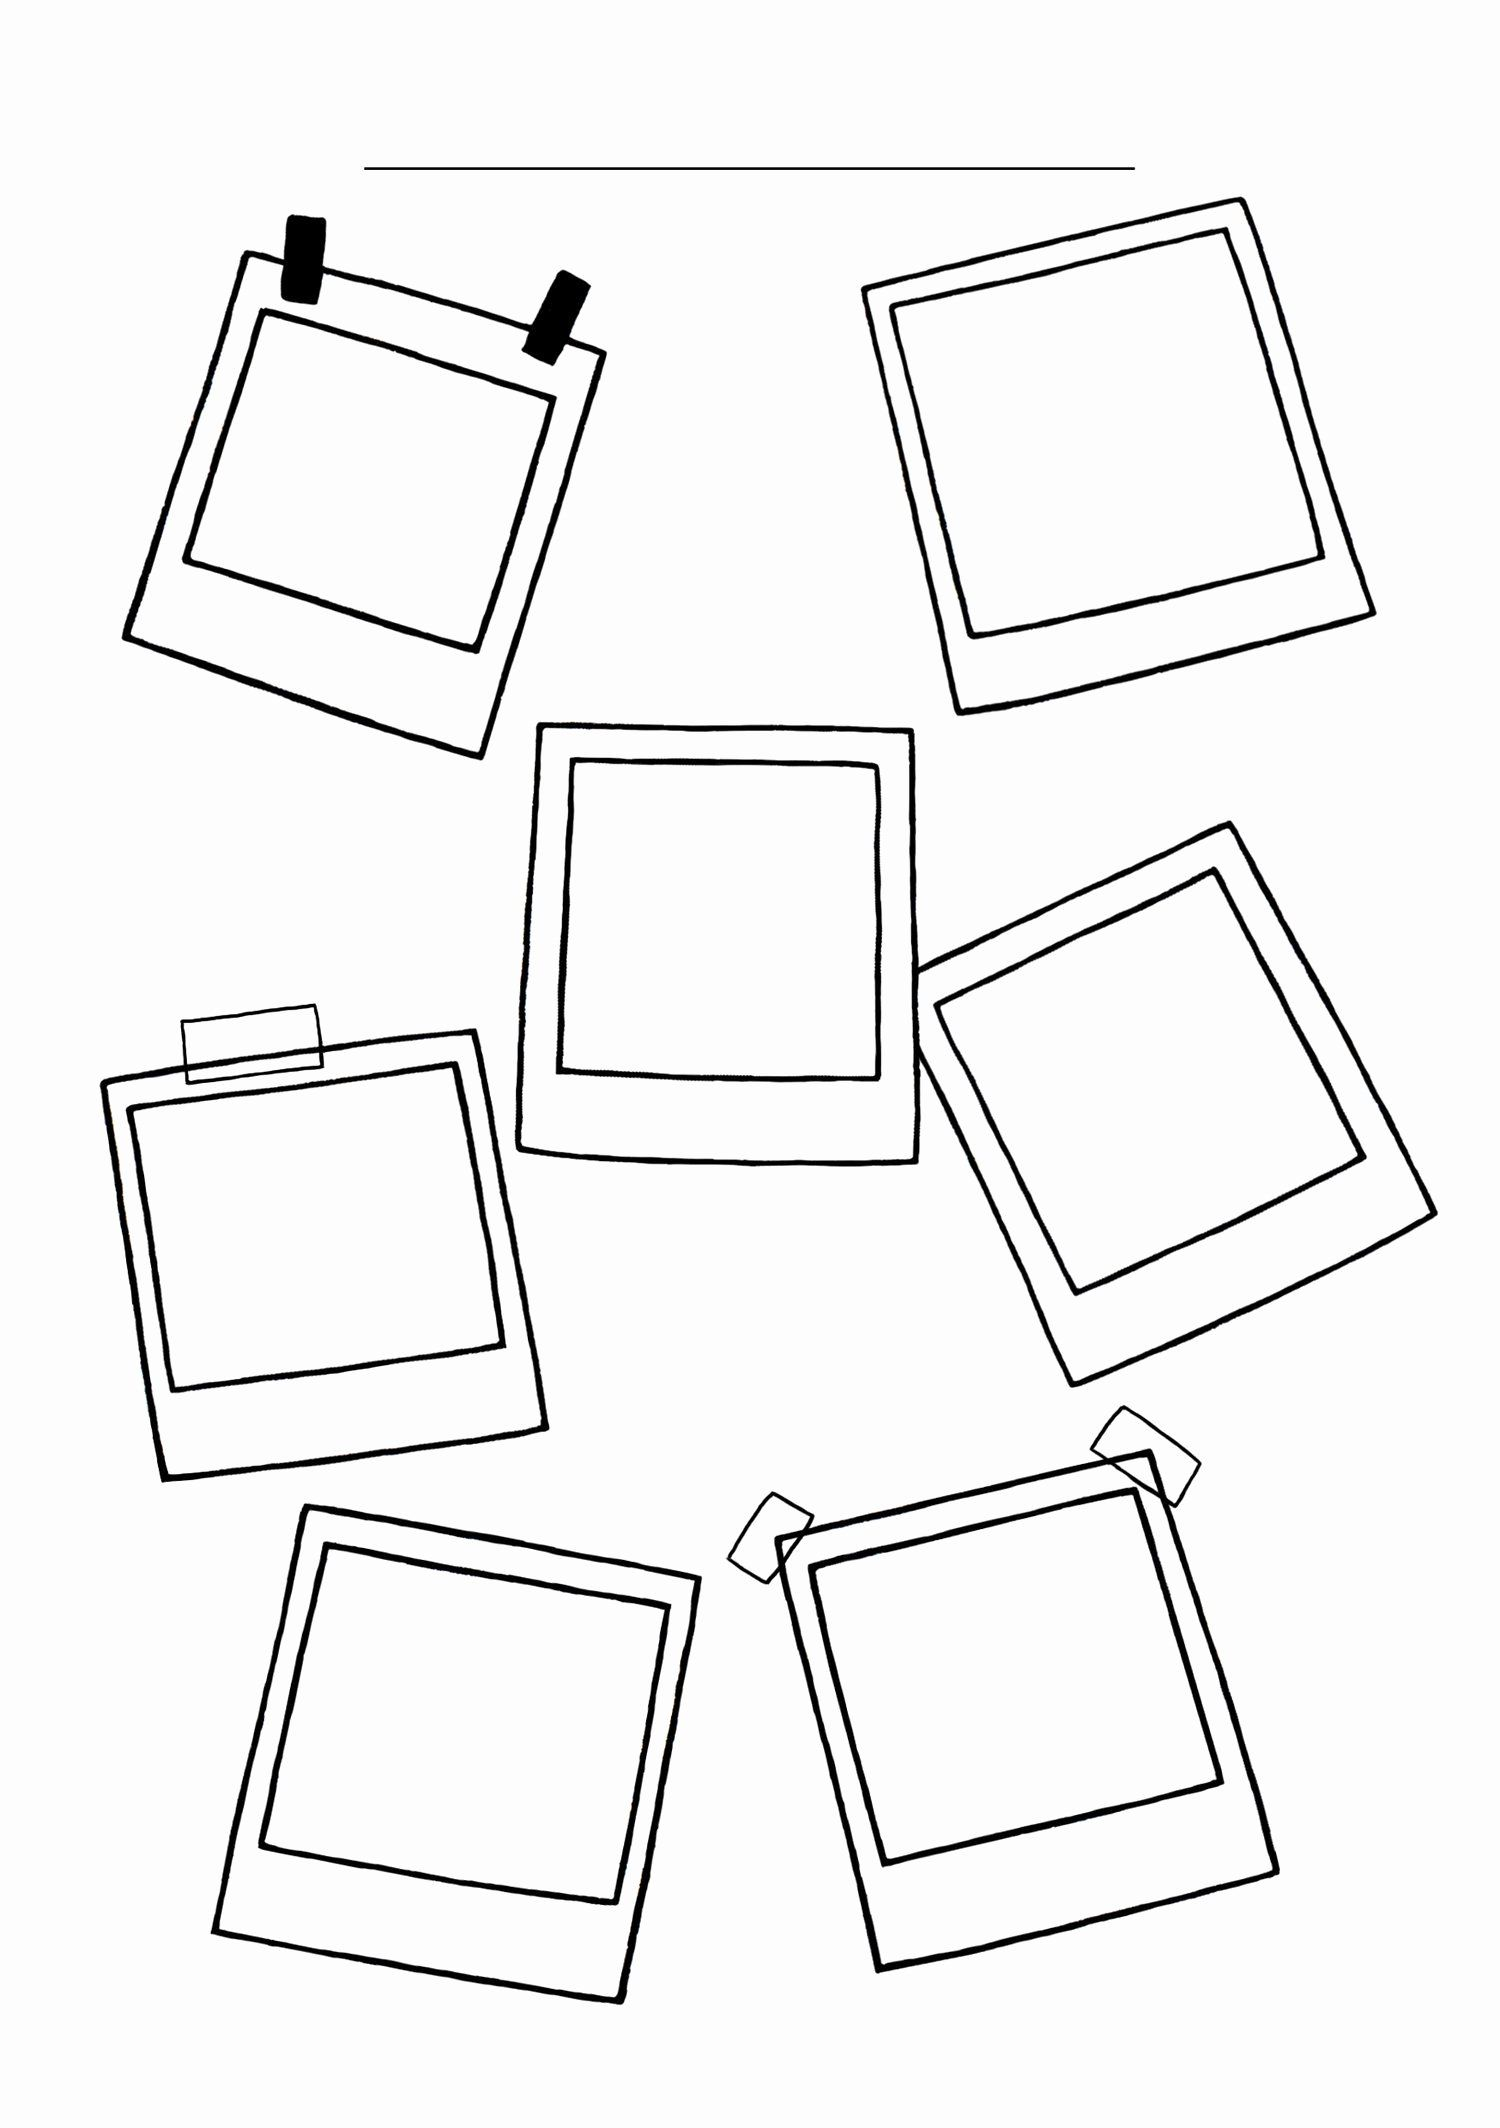 Picture Frame Coloring Sheet Lovely Coloring Pages Polaroid Frame Doodles Bullet Journal Ideas In 2020 Bullet Journal Doodles Bullet Journal Ideas Pages Polaroid Frame